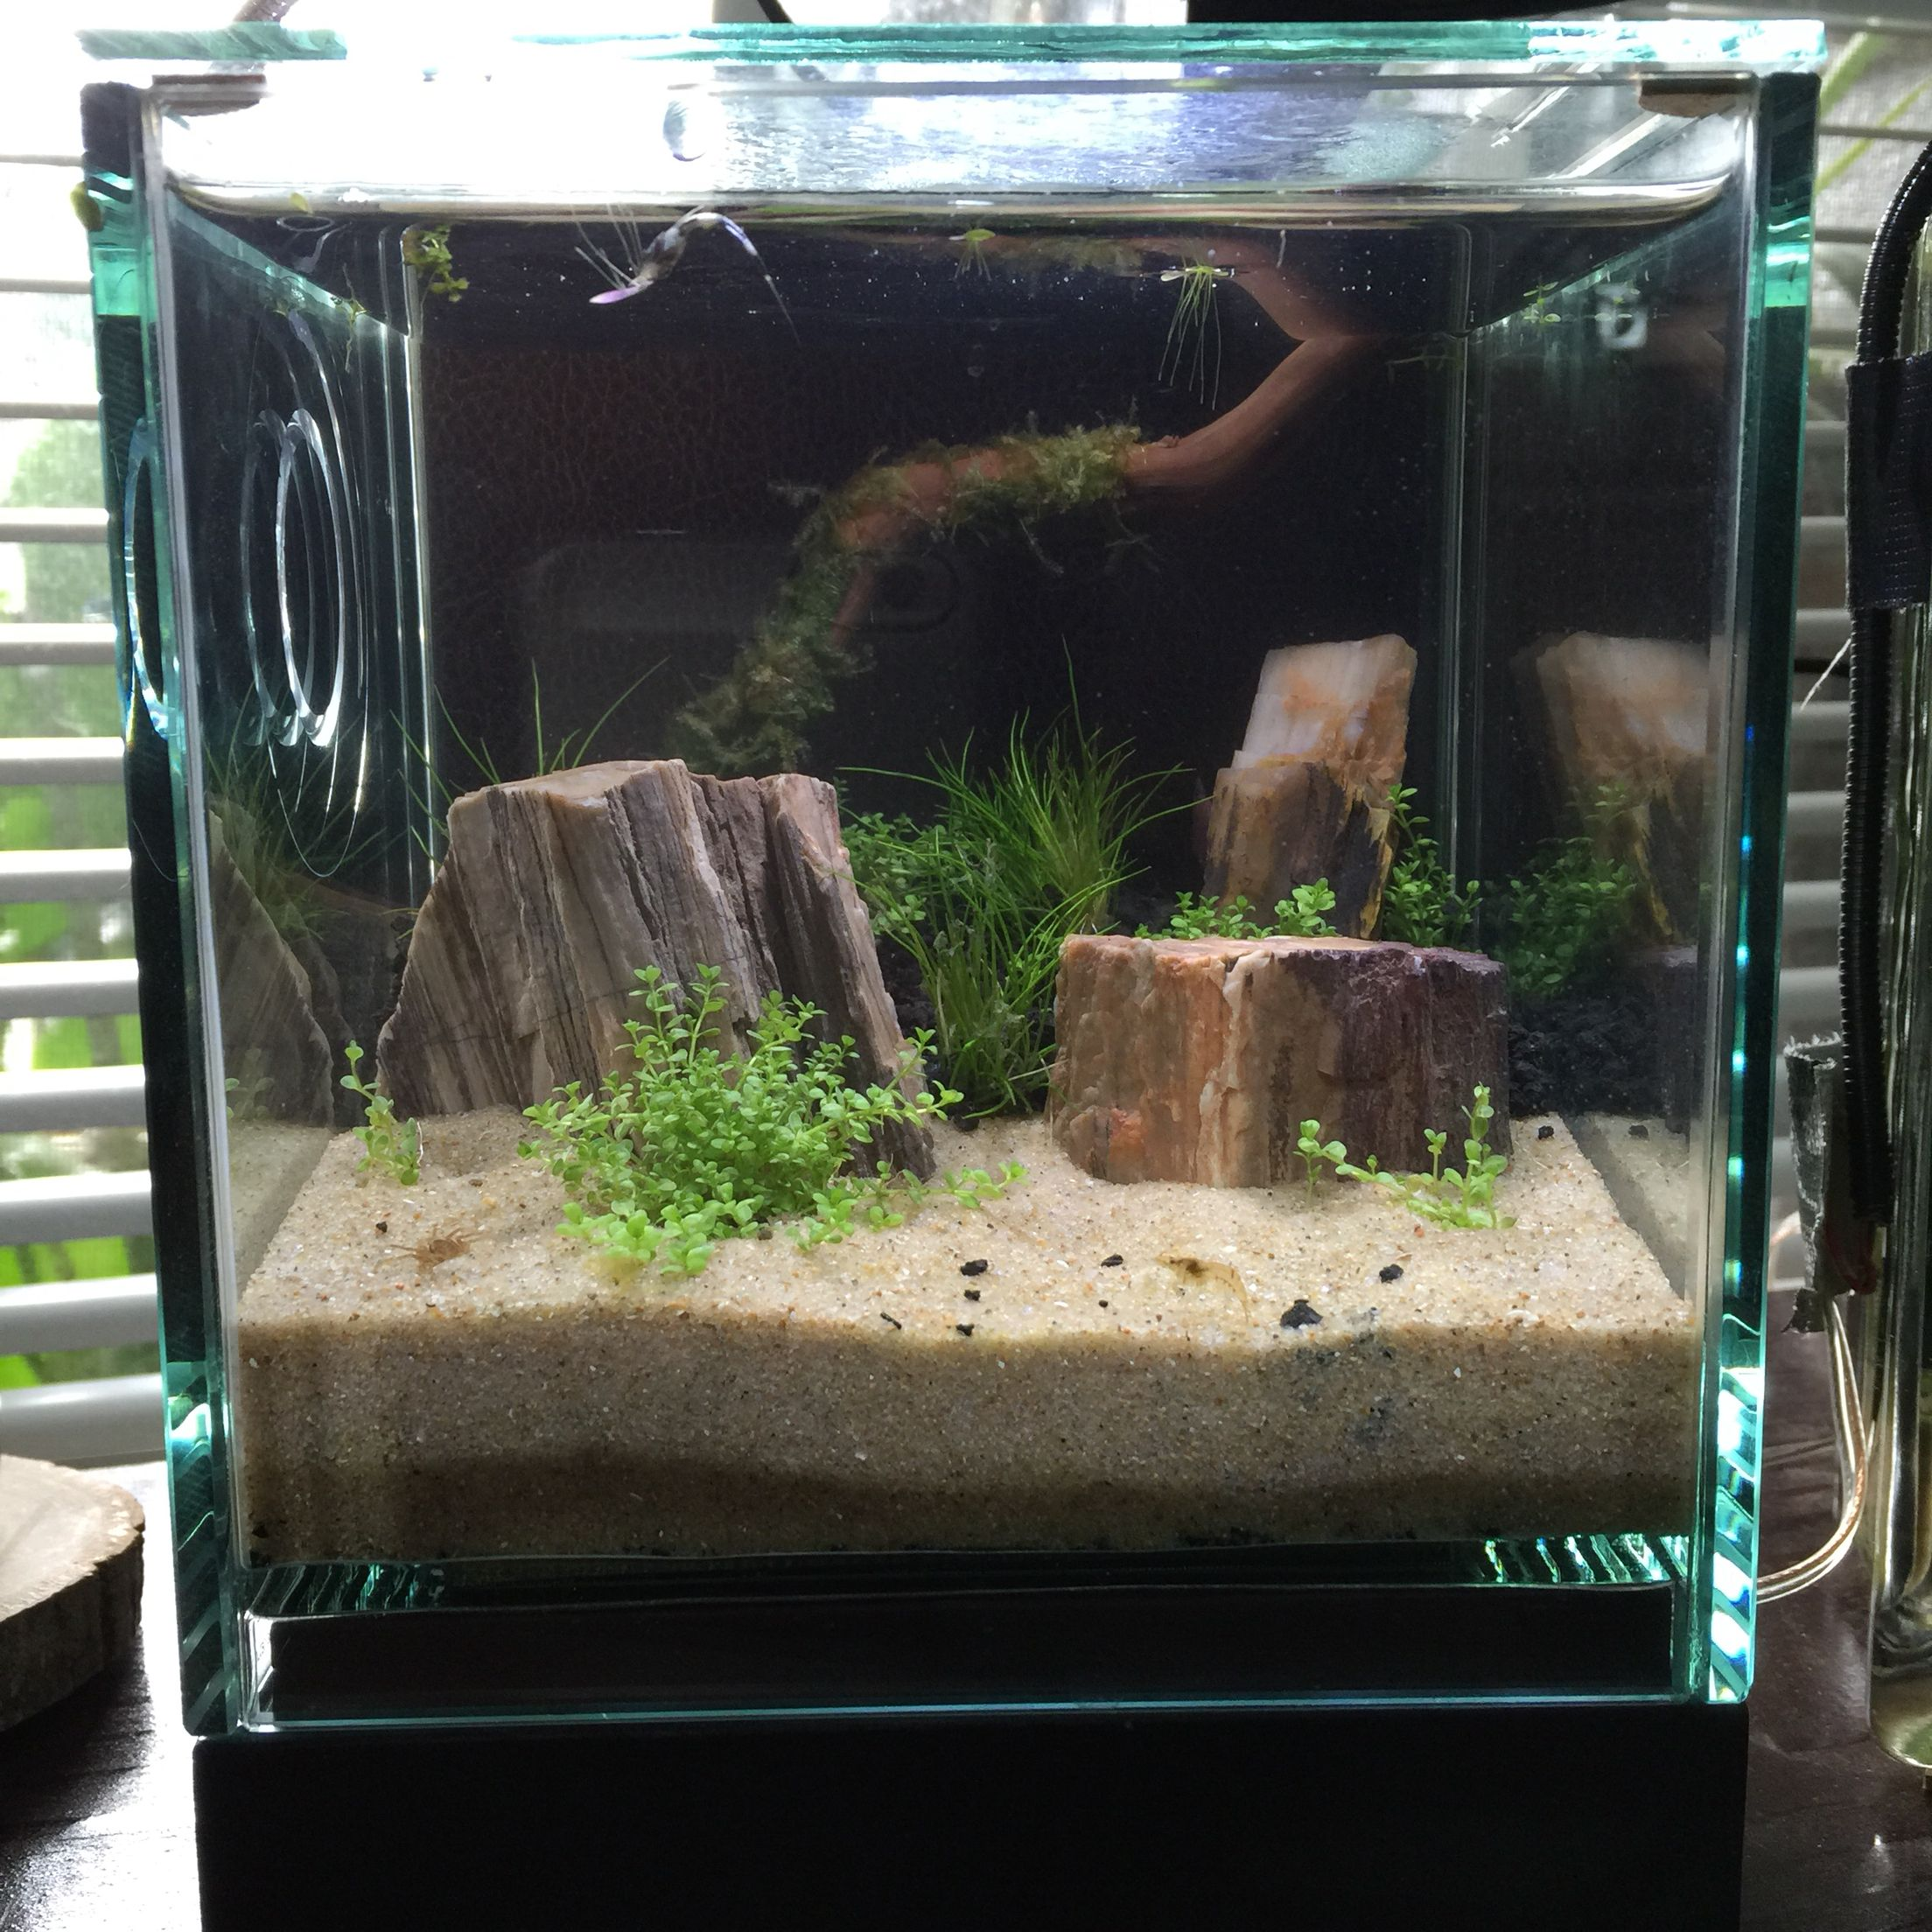 My New Shrimp Tank 1 2 Gallon No Filter Just Light Low Maintenance Shrimp Tank Fish Tank Freshwater Aquarium